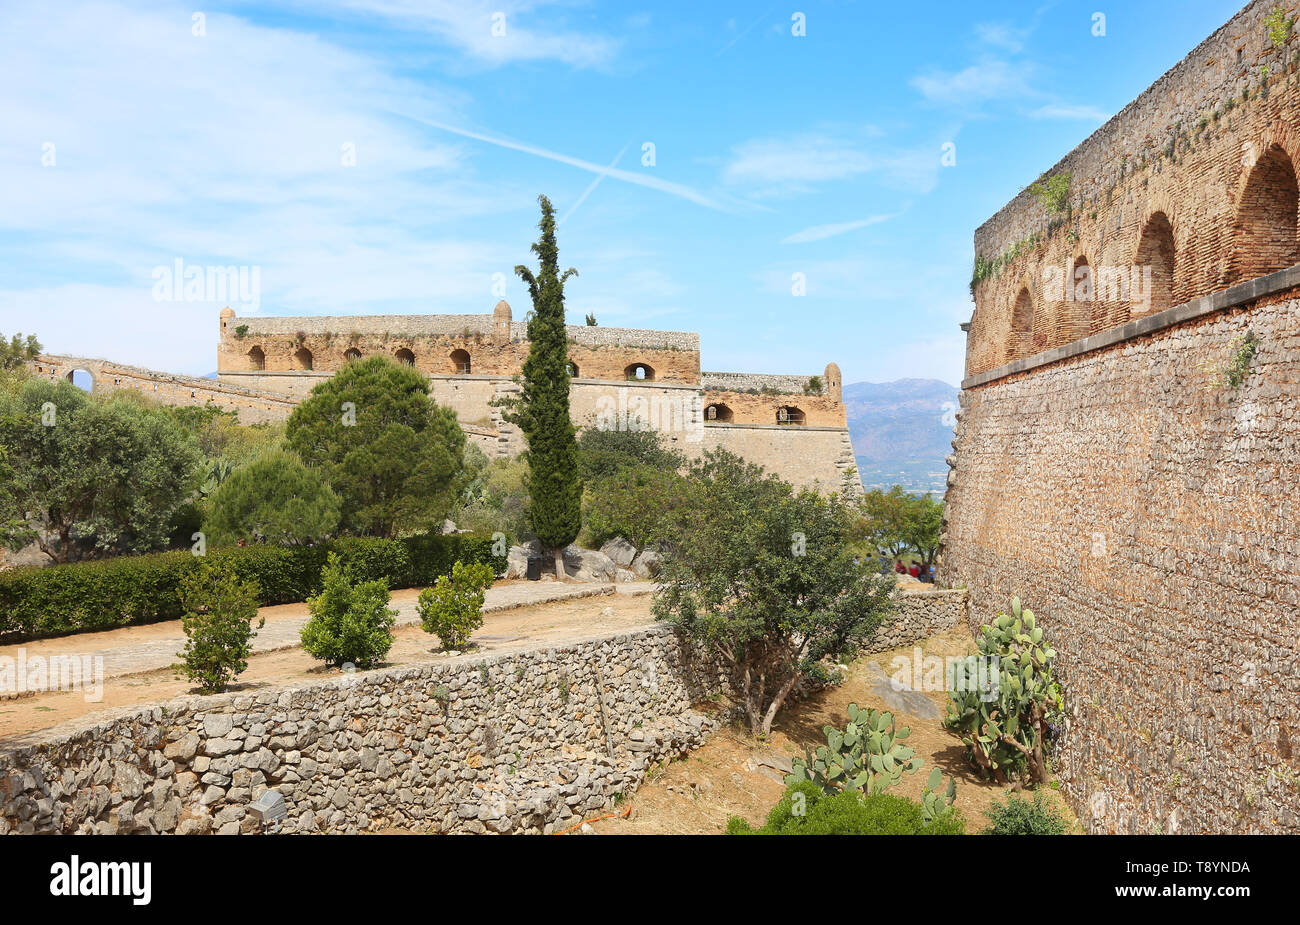 inside the Palamidi fortress in the town of Nafplio Argolis Greece - Stock Image